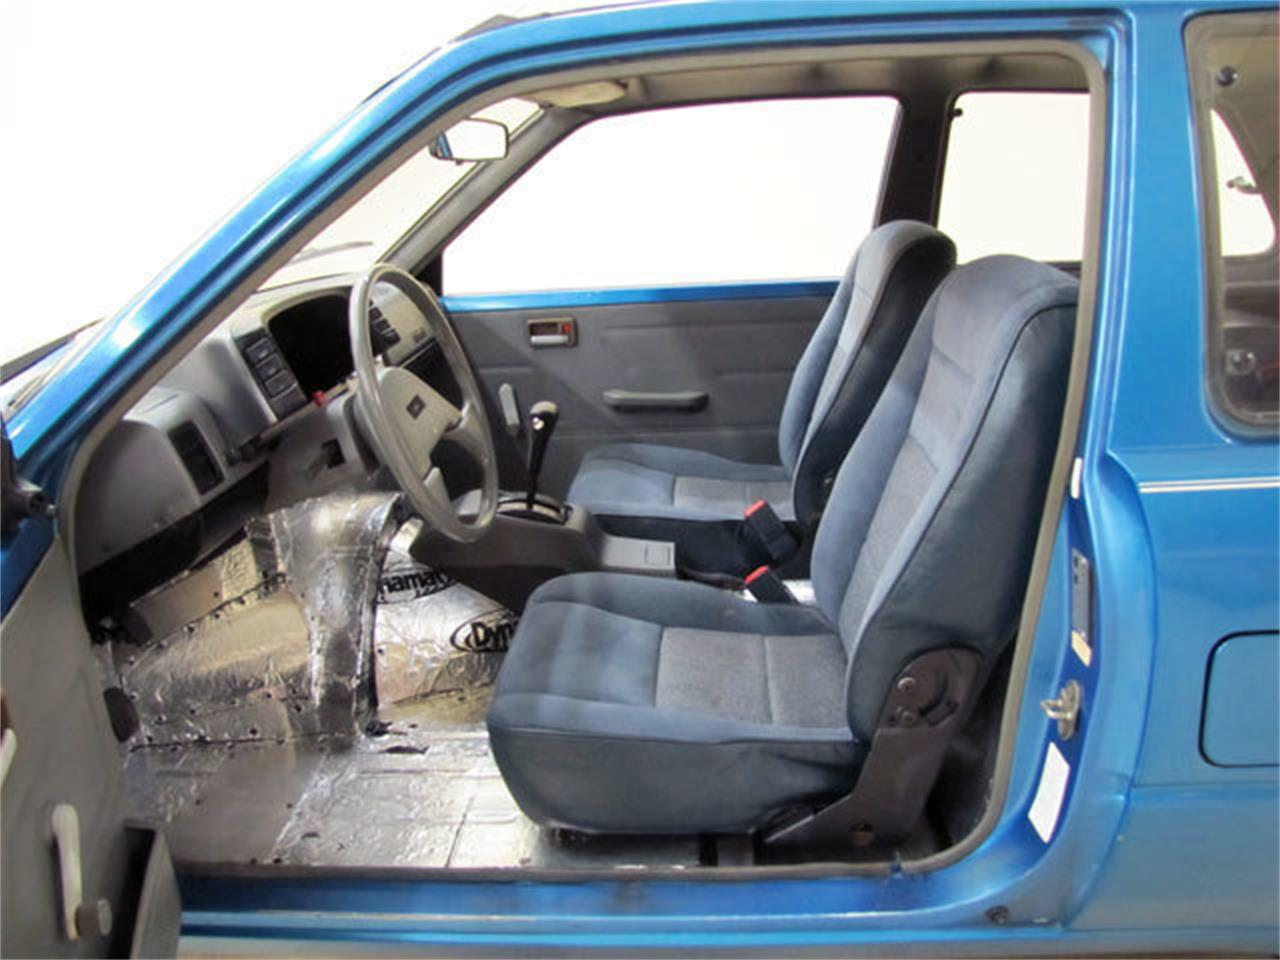 Large Picture of '88 Chevrolet Sprint located in North Carolina - $34,995.00 - JQ2L